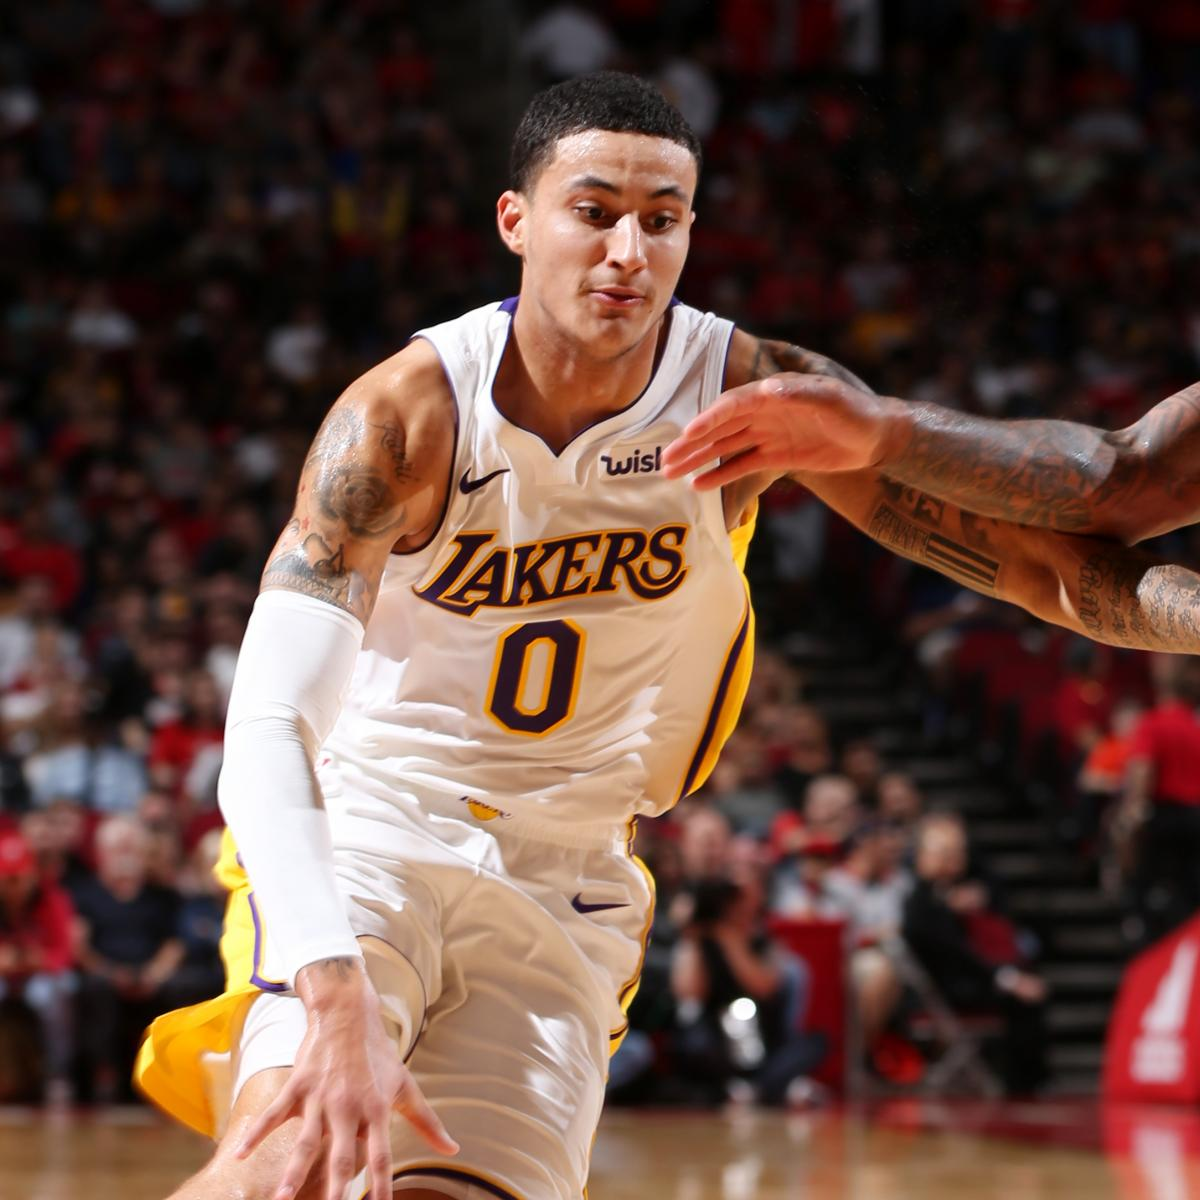 The Night In The NBA: Olynyk Drops 32, Lakers End Rockets